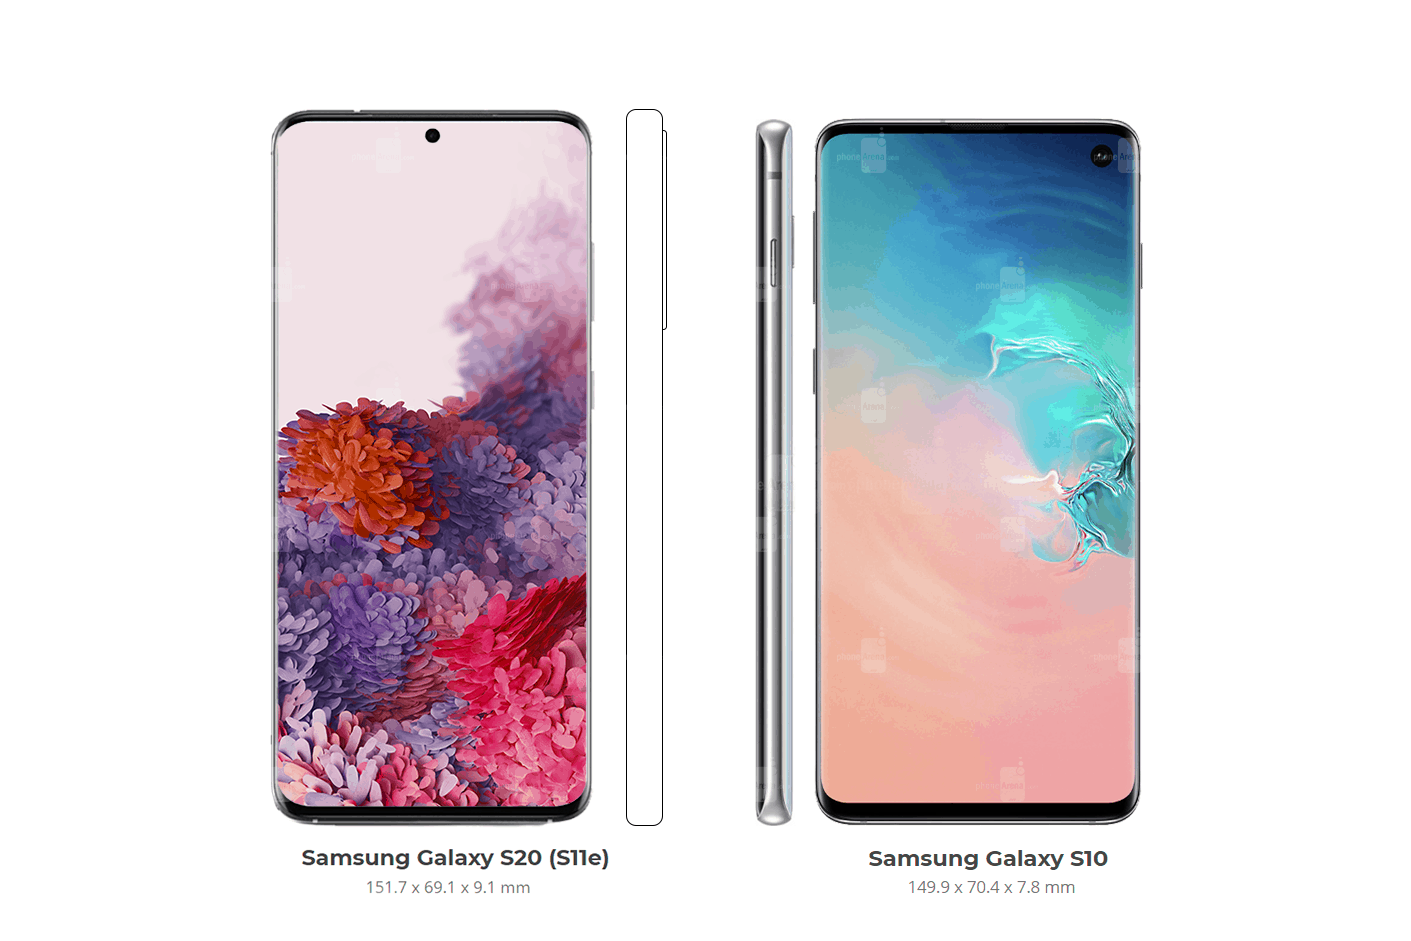 Samsung Galaxy S20 series vs Galaxy S10